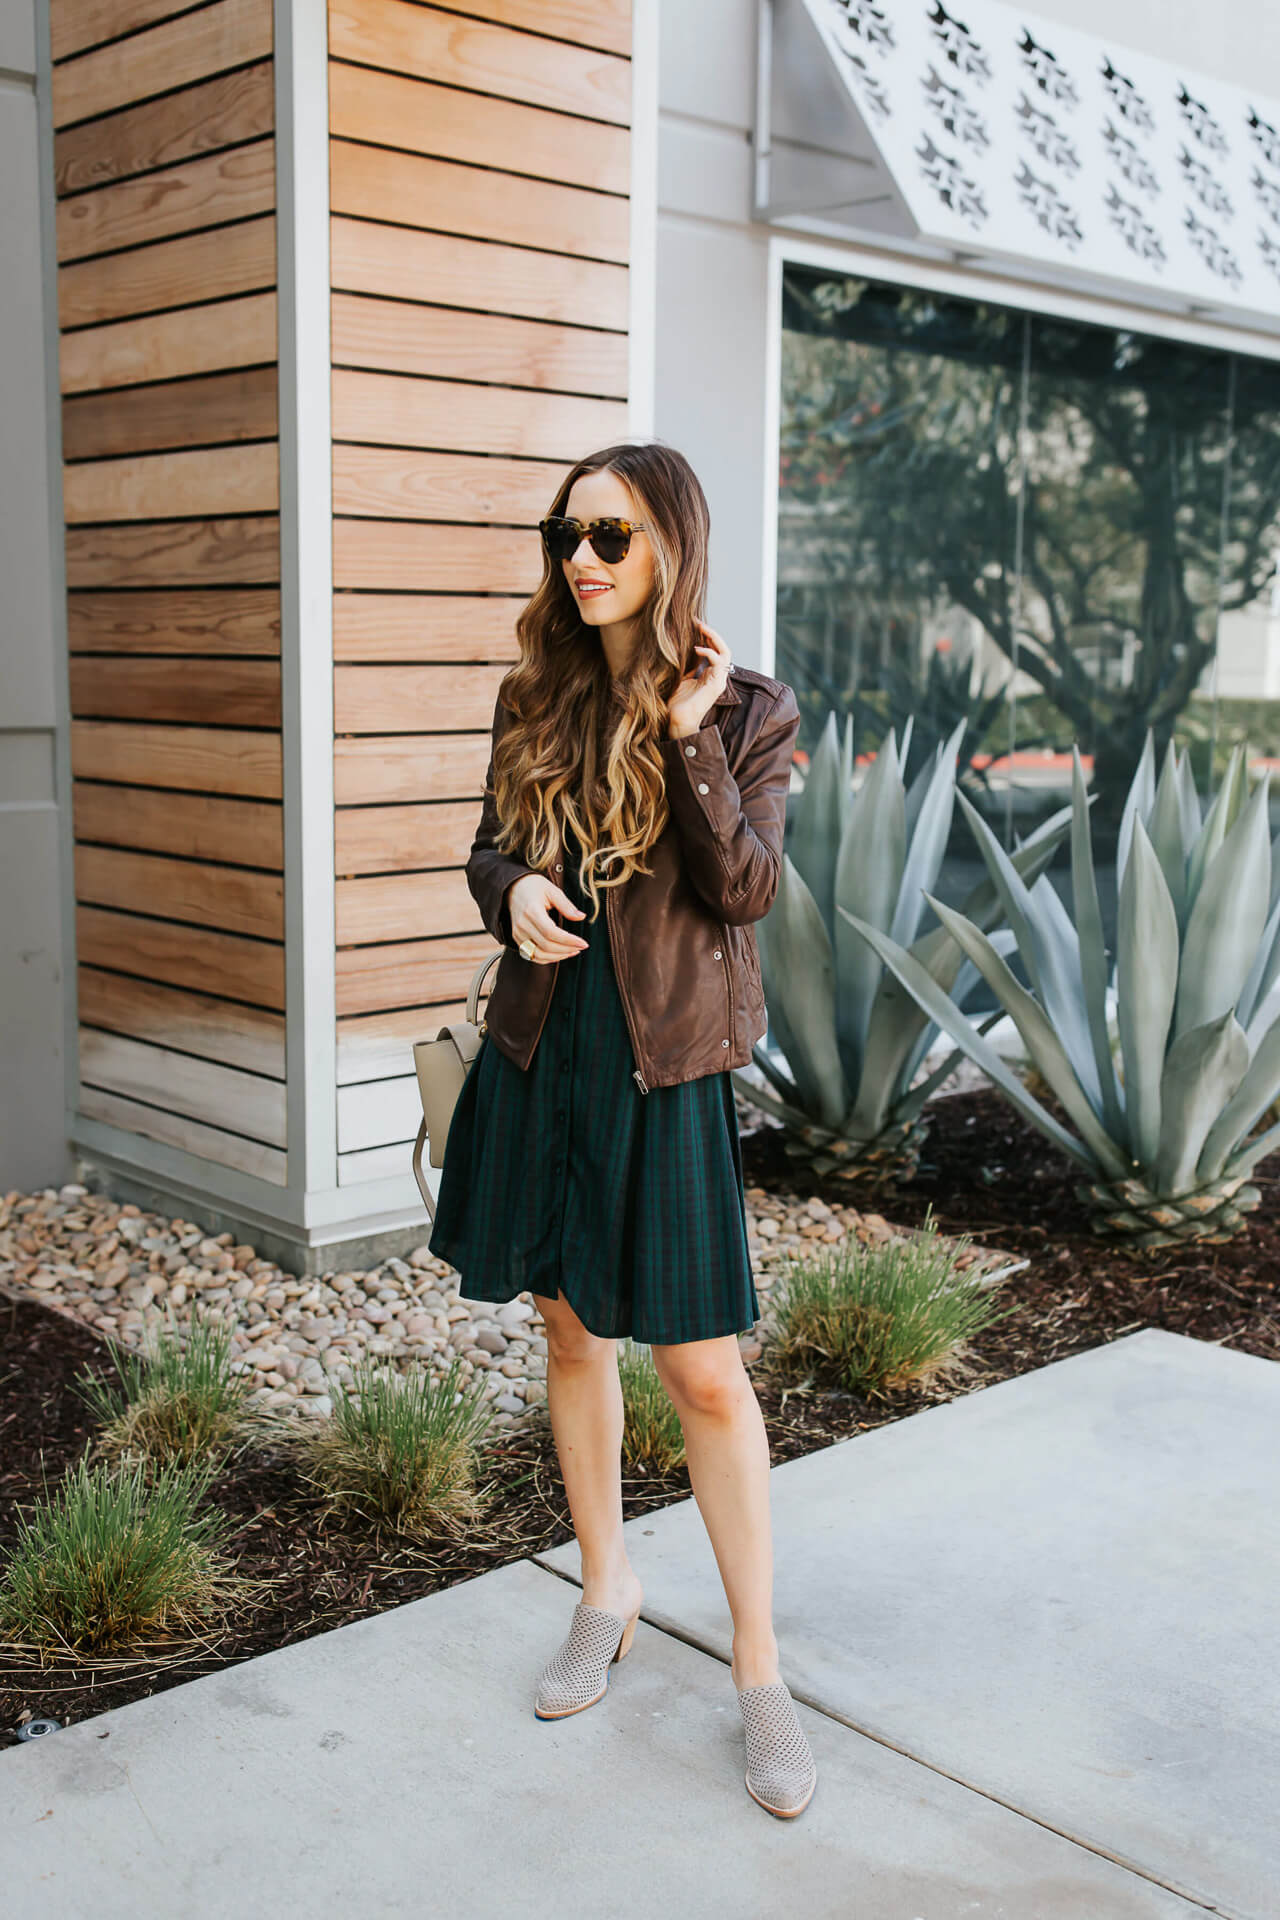 The versatile outfit you can wear in summer and fall! | M Loves M @marmar